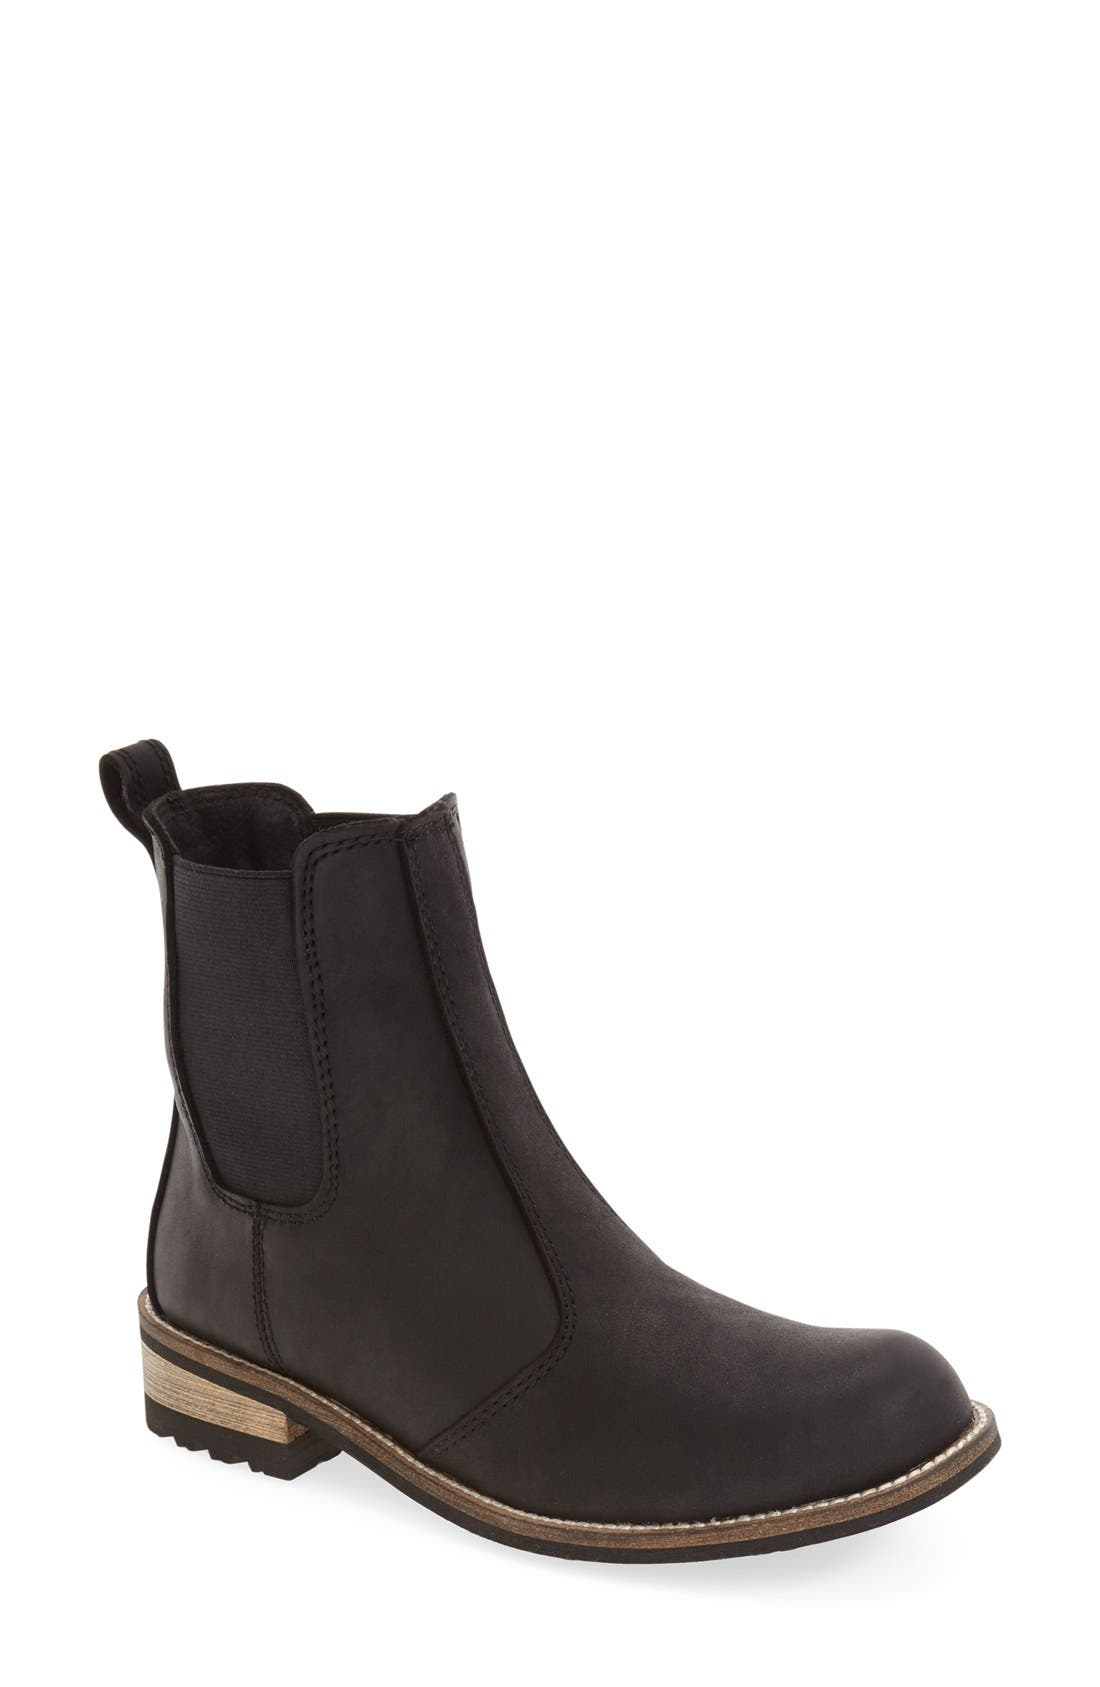 'Alma' Waterproof Chelsea Boot,                         Main,                         color, BLACK LEATHER